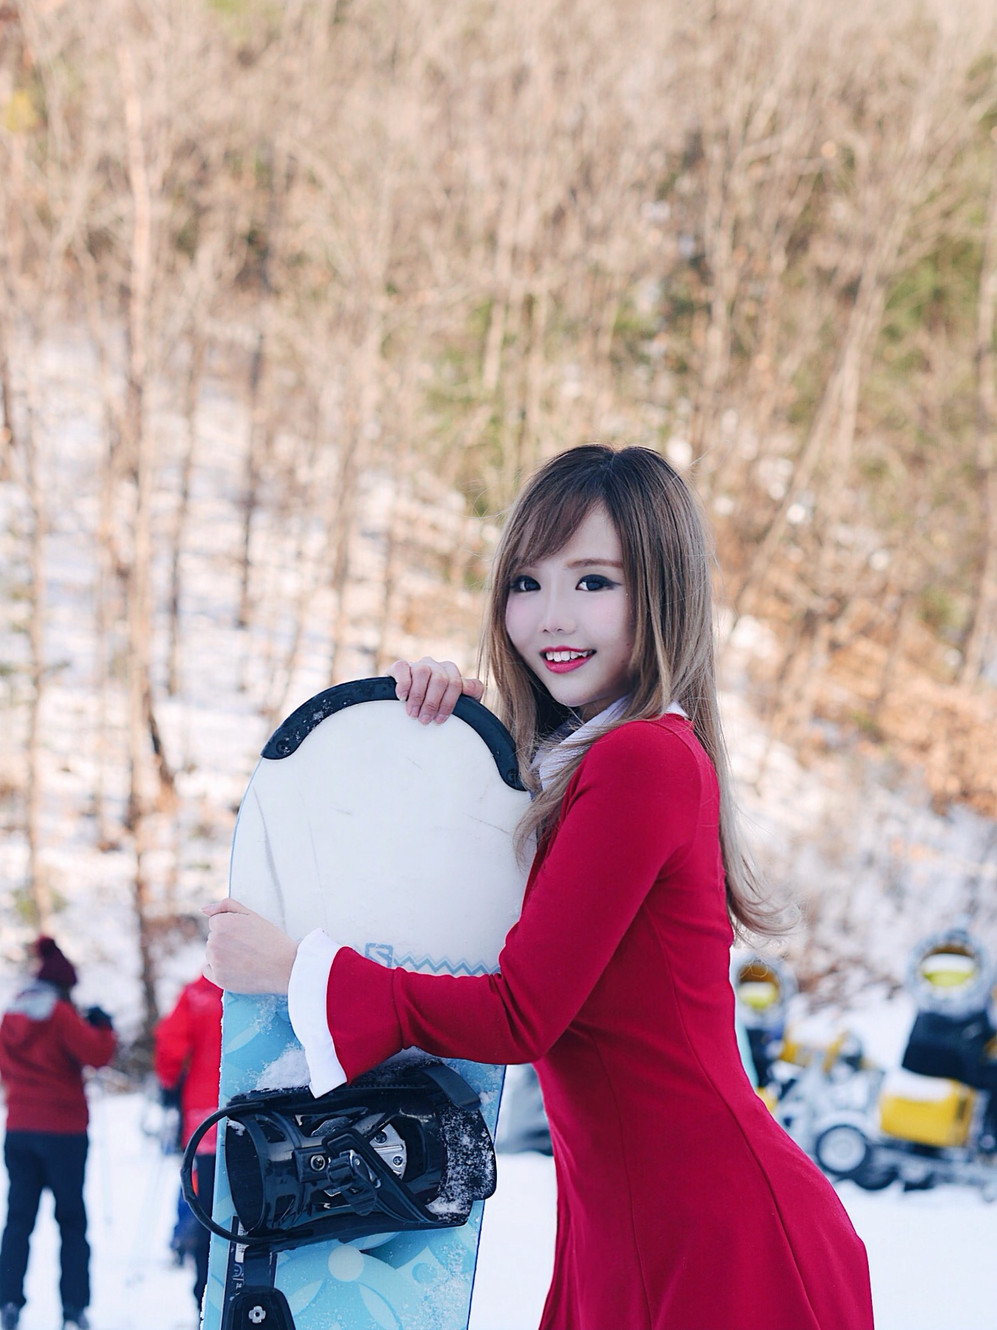 Things to do in Seoul (Winter): Daemyung Vivaldi Ski Park and snowboard/ski lesson with KoreaTravelEasy